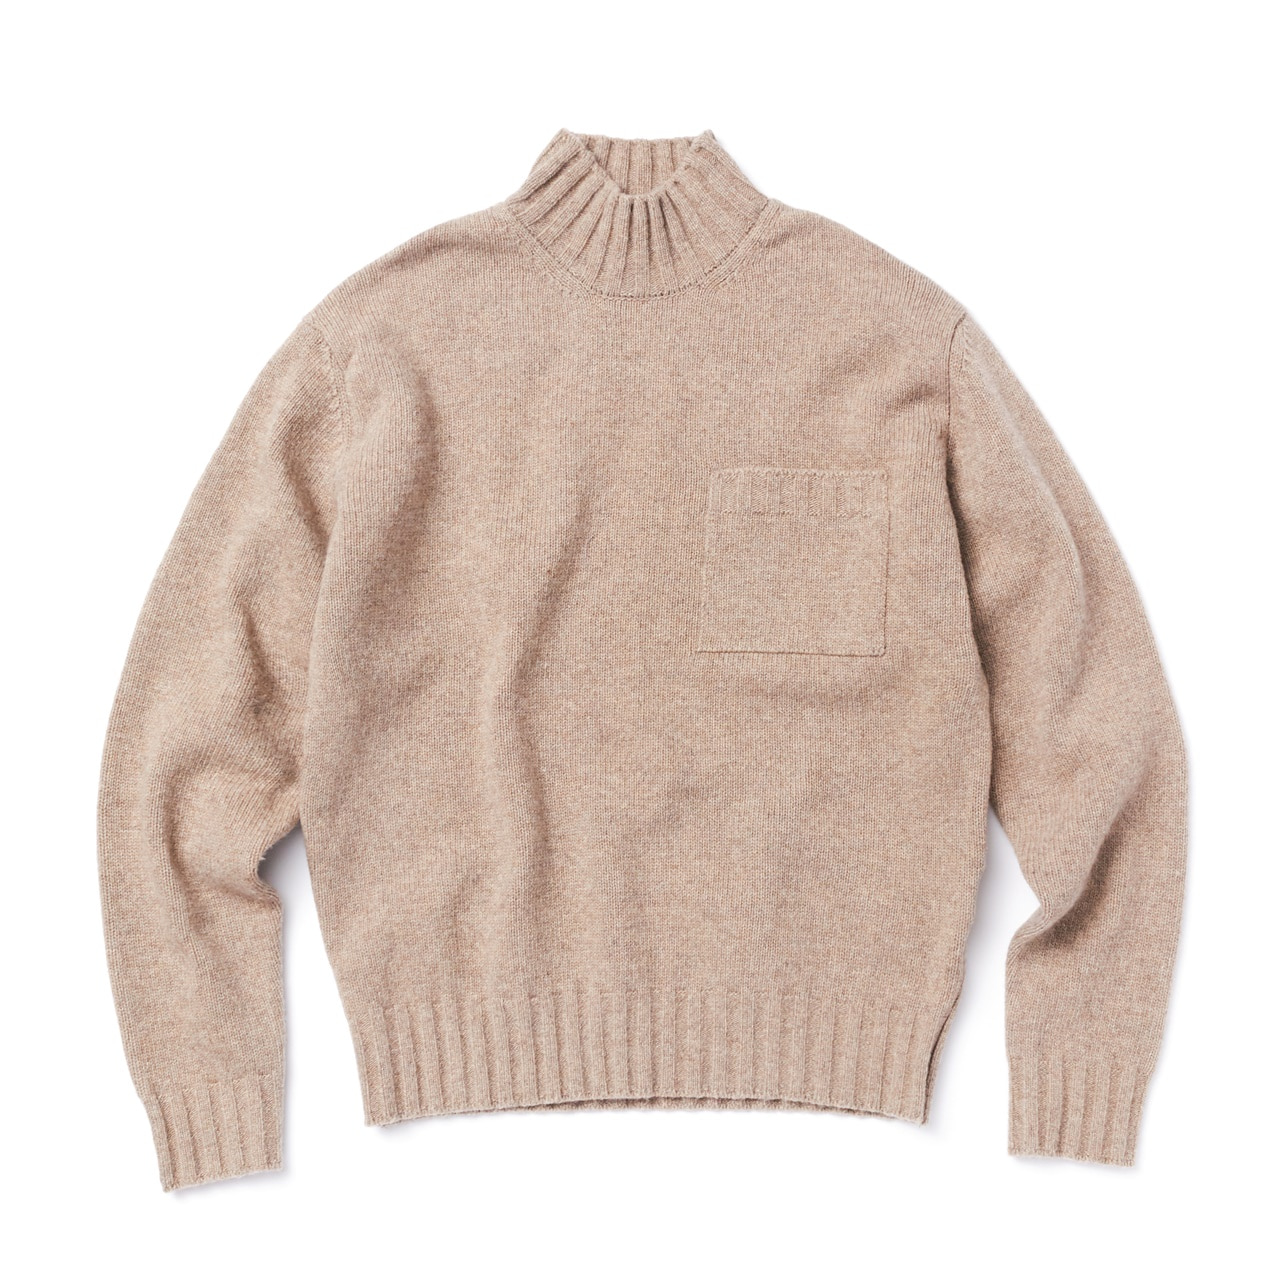 -[AMFEAST] BEIGE BIG POCKET SWEATER